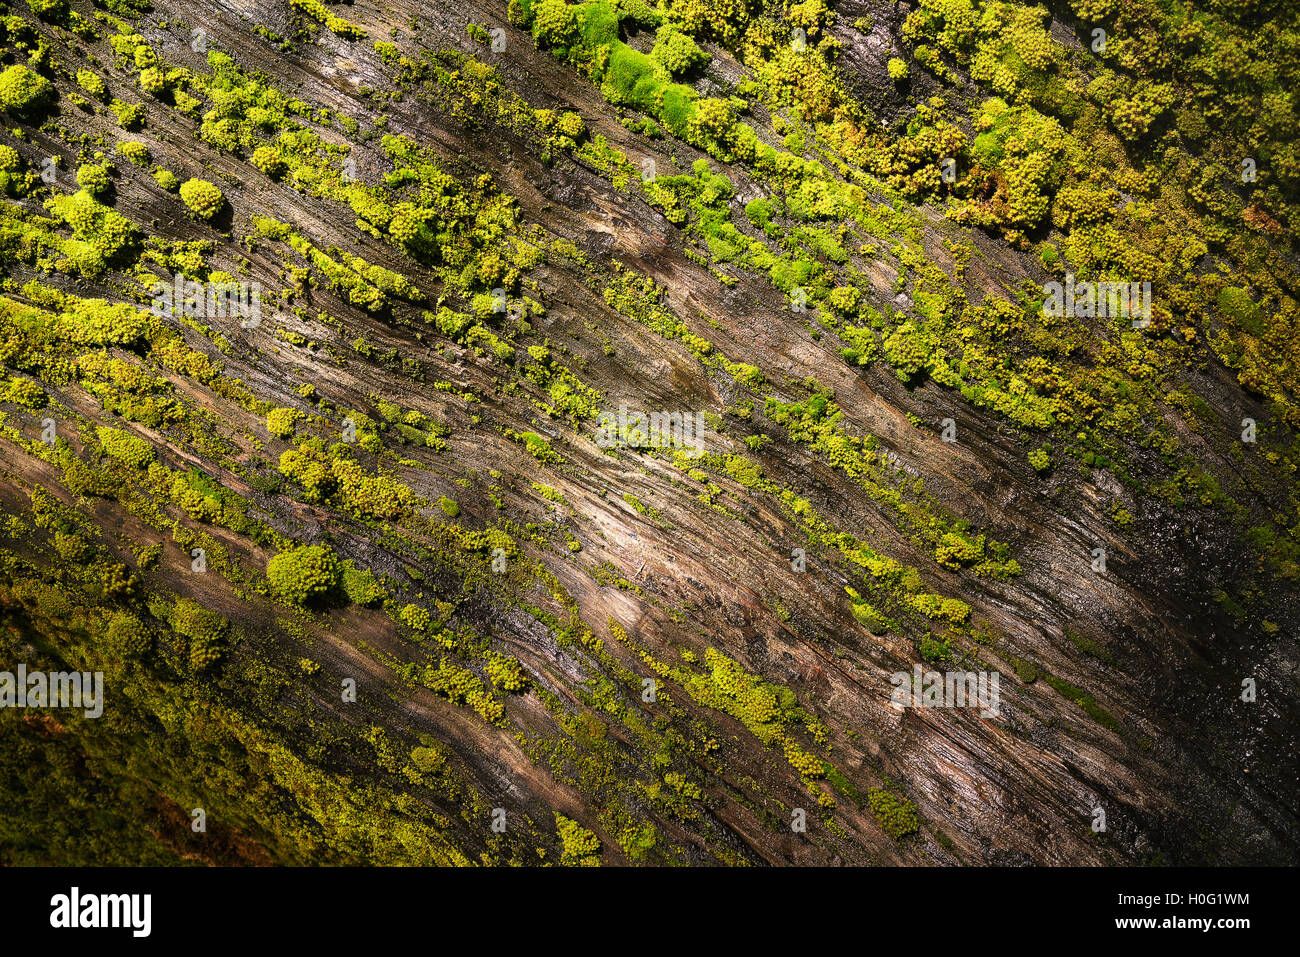 Couvert de mousse en arbre séquoia Sequoia National Park Photo Stock